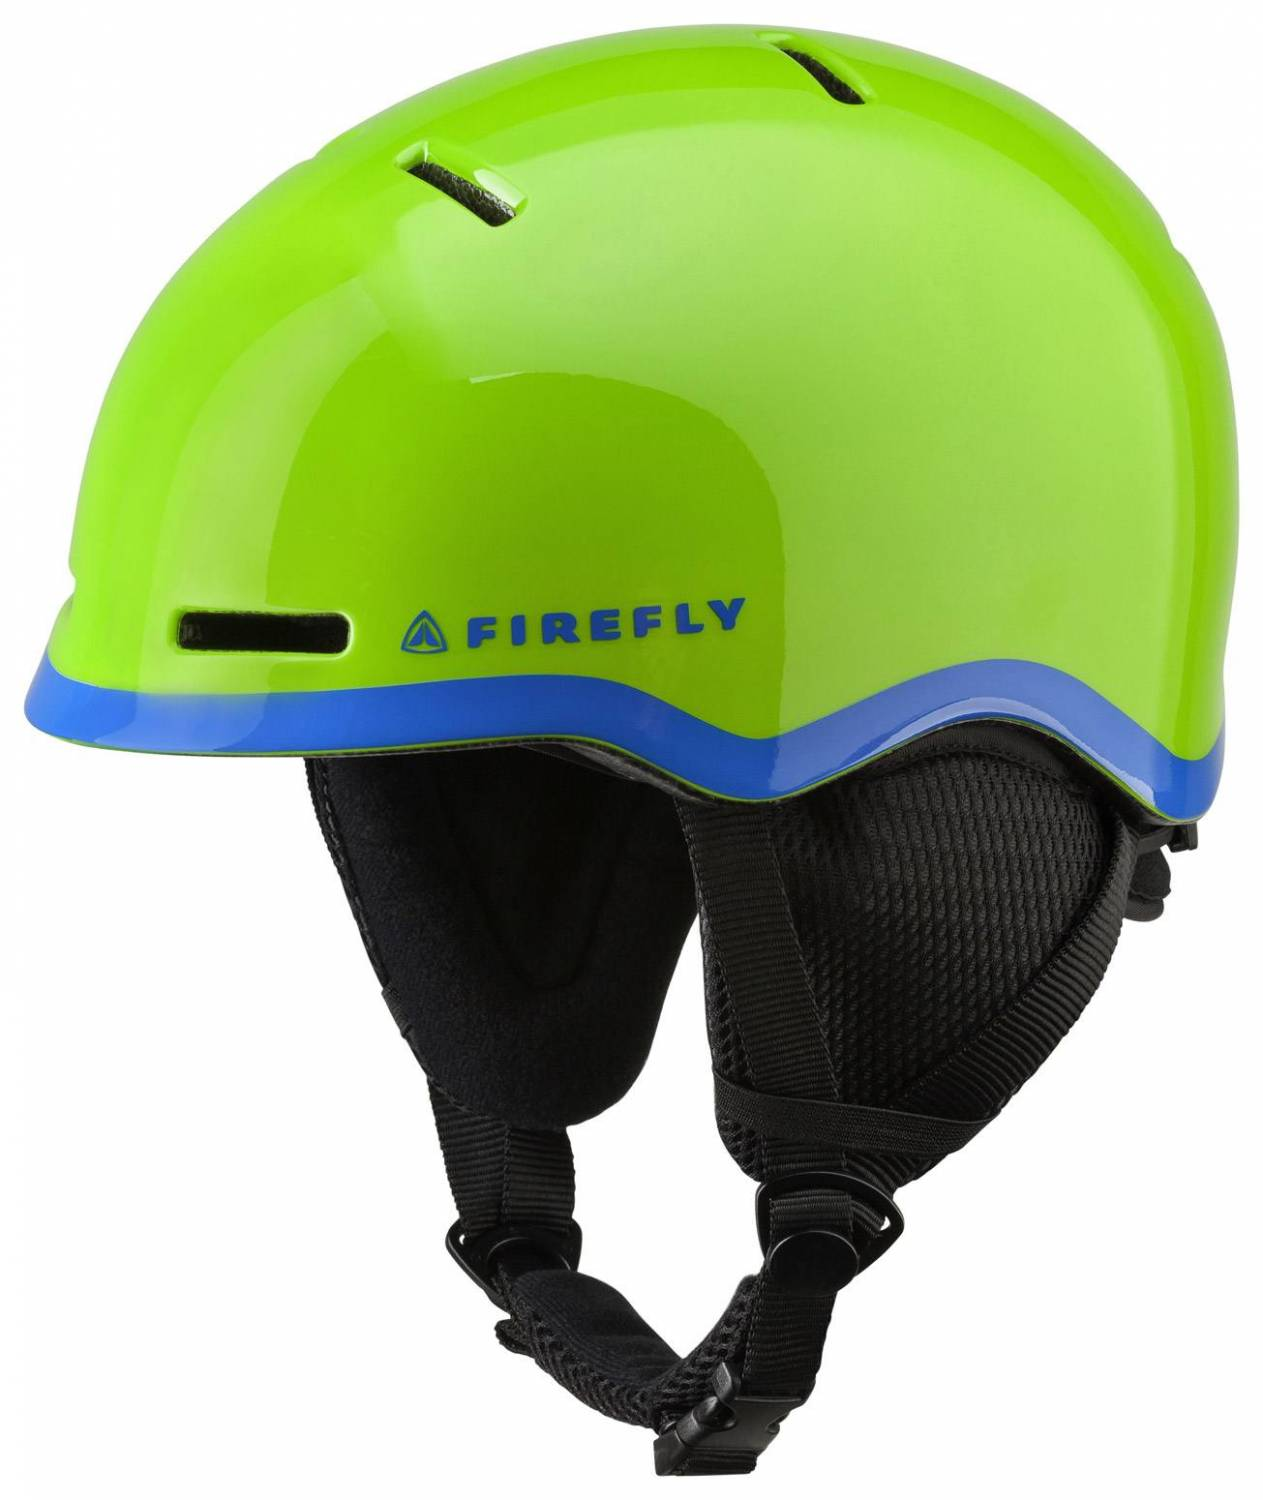 Firefly Rocket Junior YJ 52 Kinderskihelm (Größe 48 52 cm, 908 green blue)